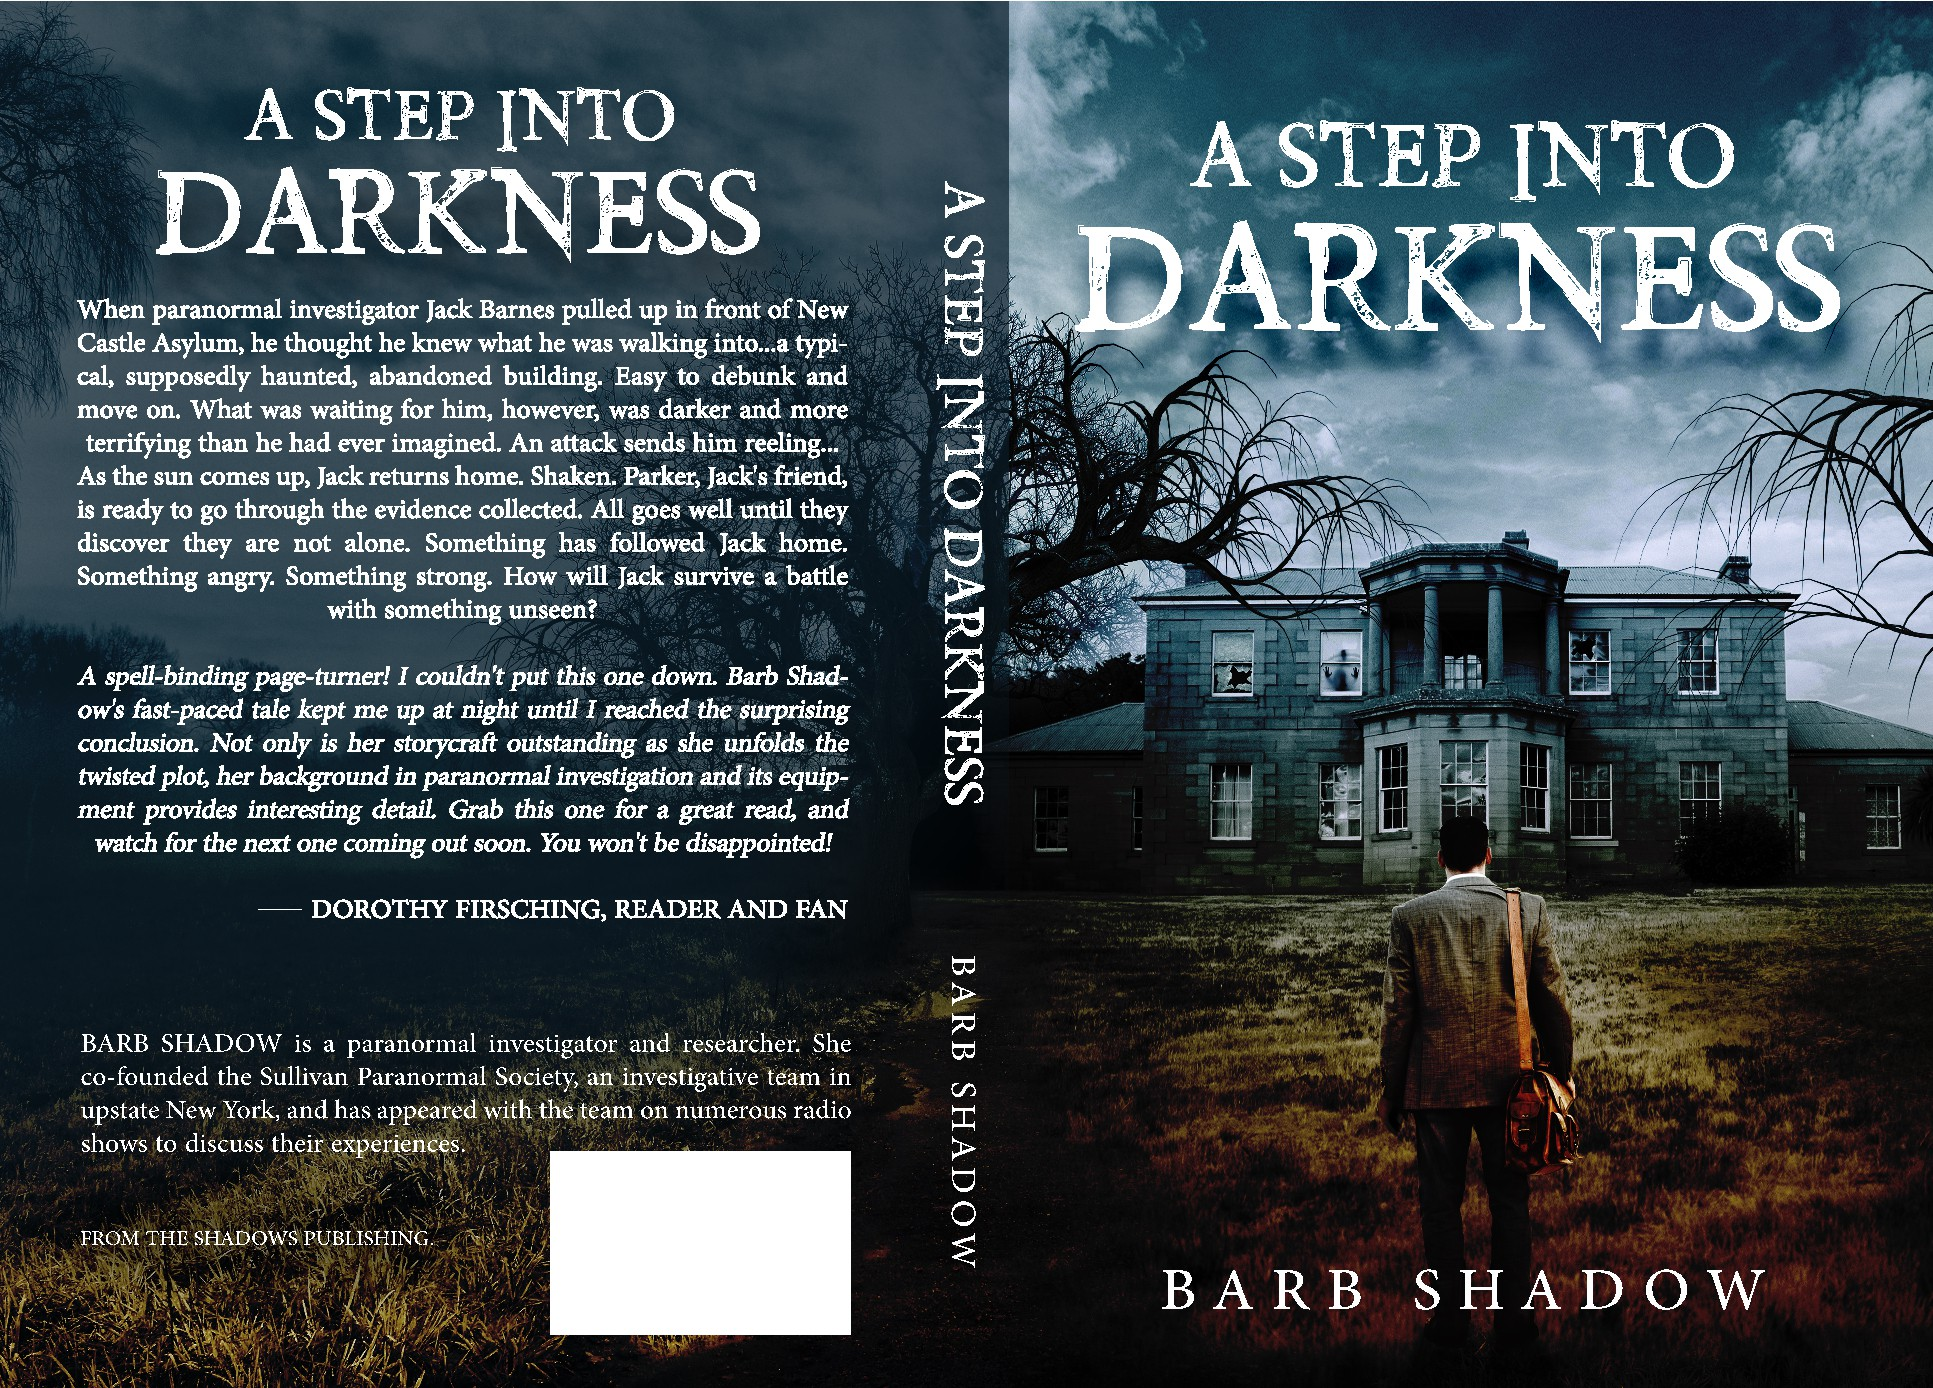 Design a dark and creepy book cover for A Step Into Darkness.